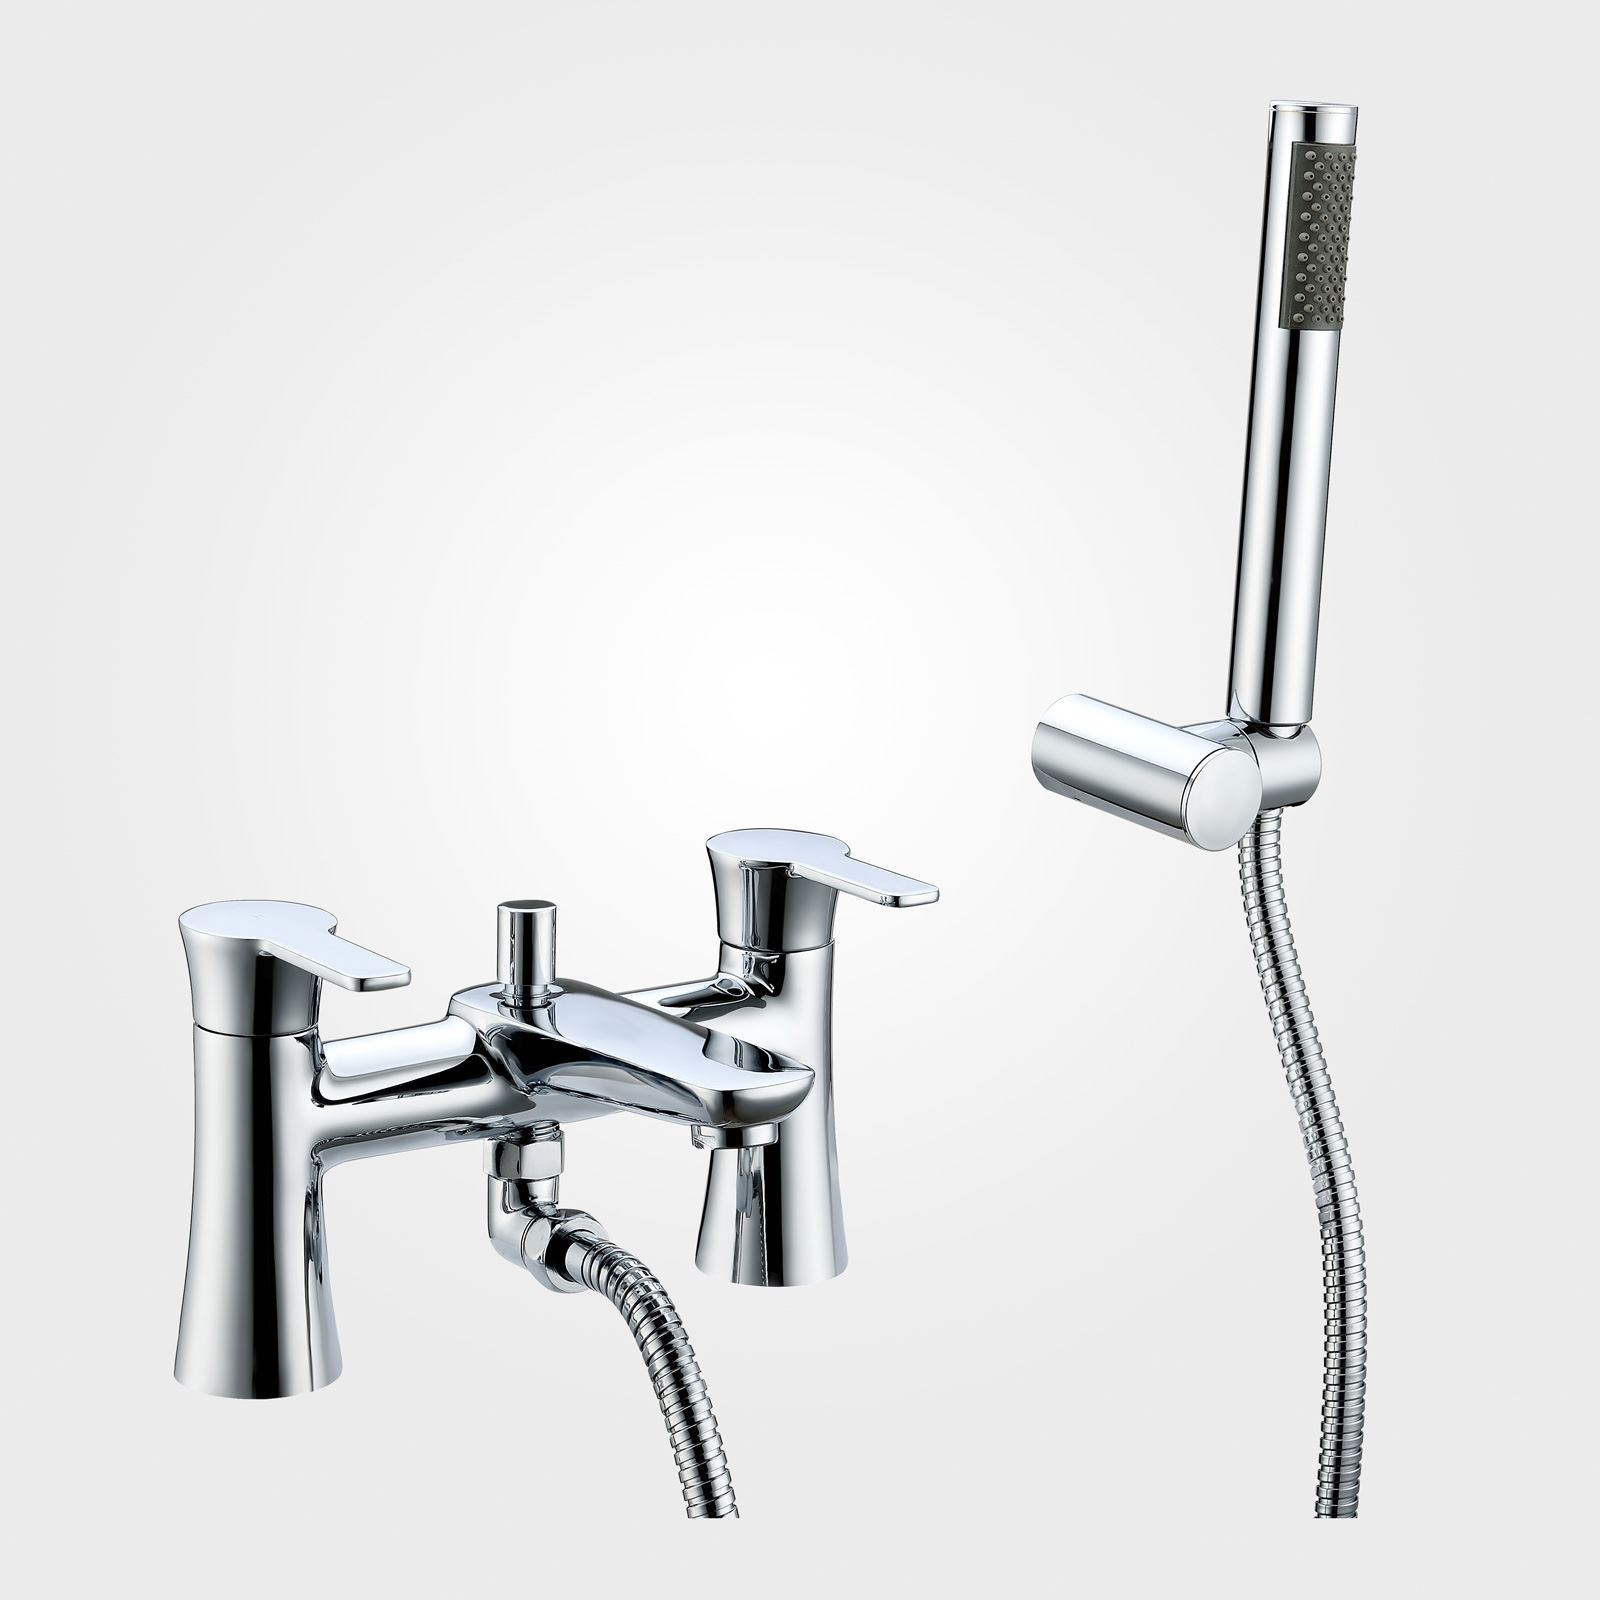 Perth Bath Shower Tap Mixer With Pencil Handset And Fixing